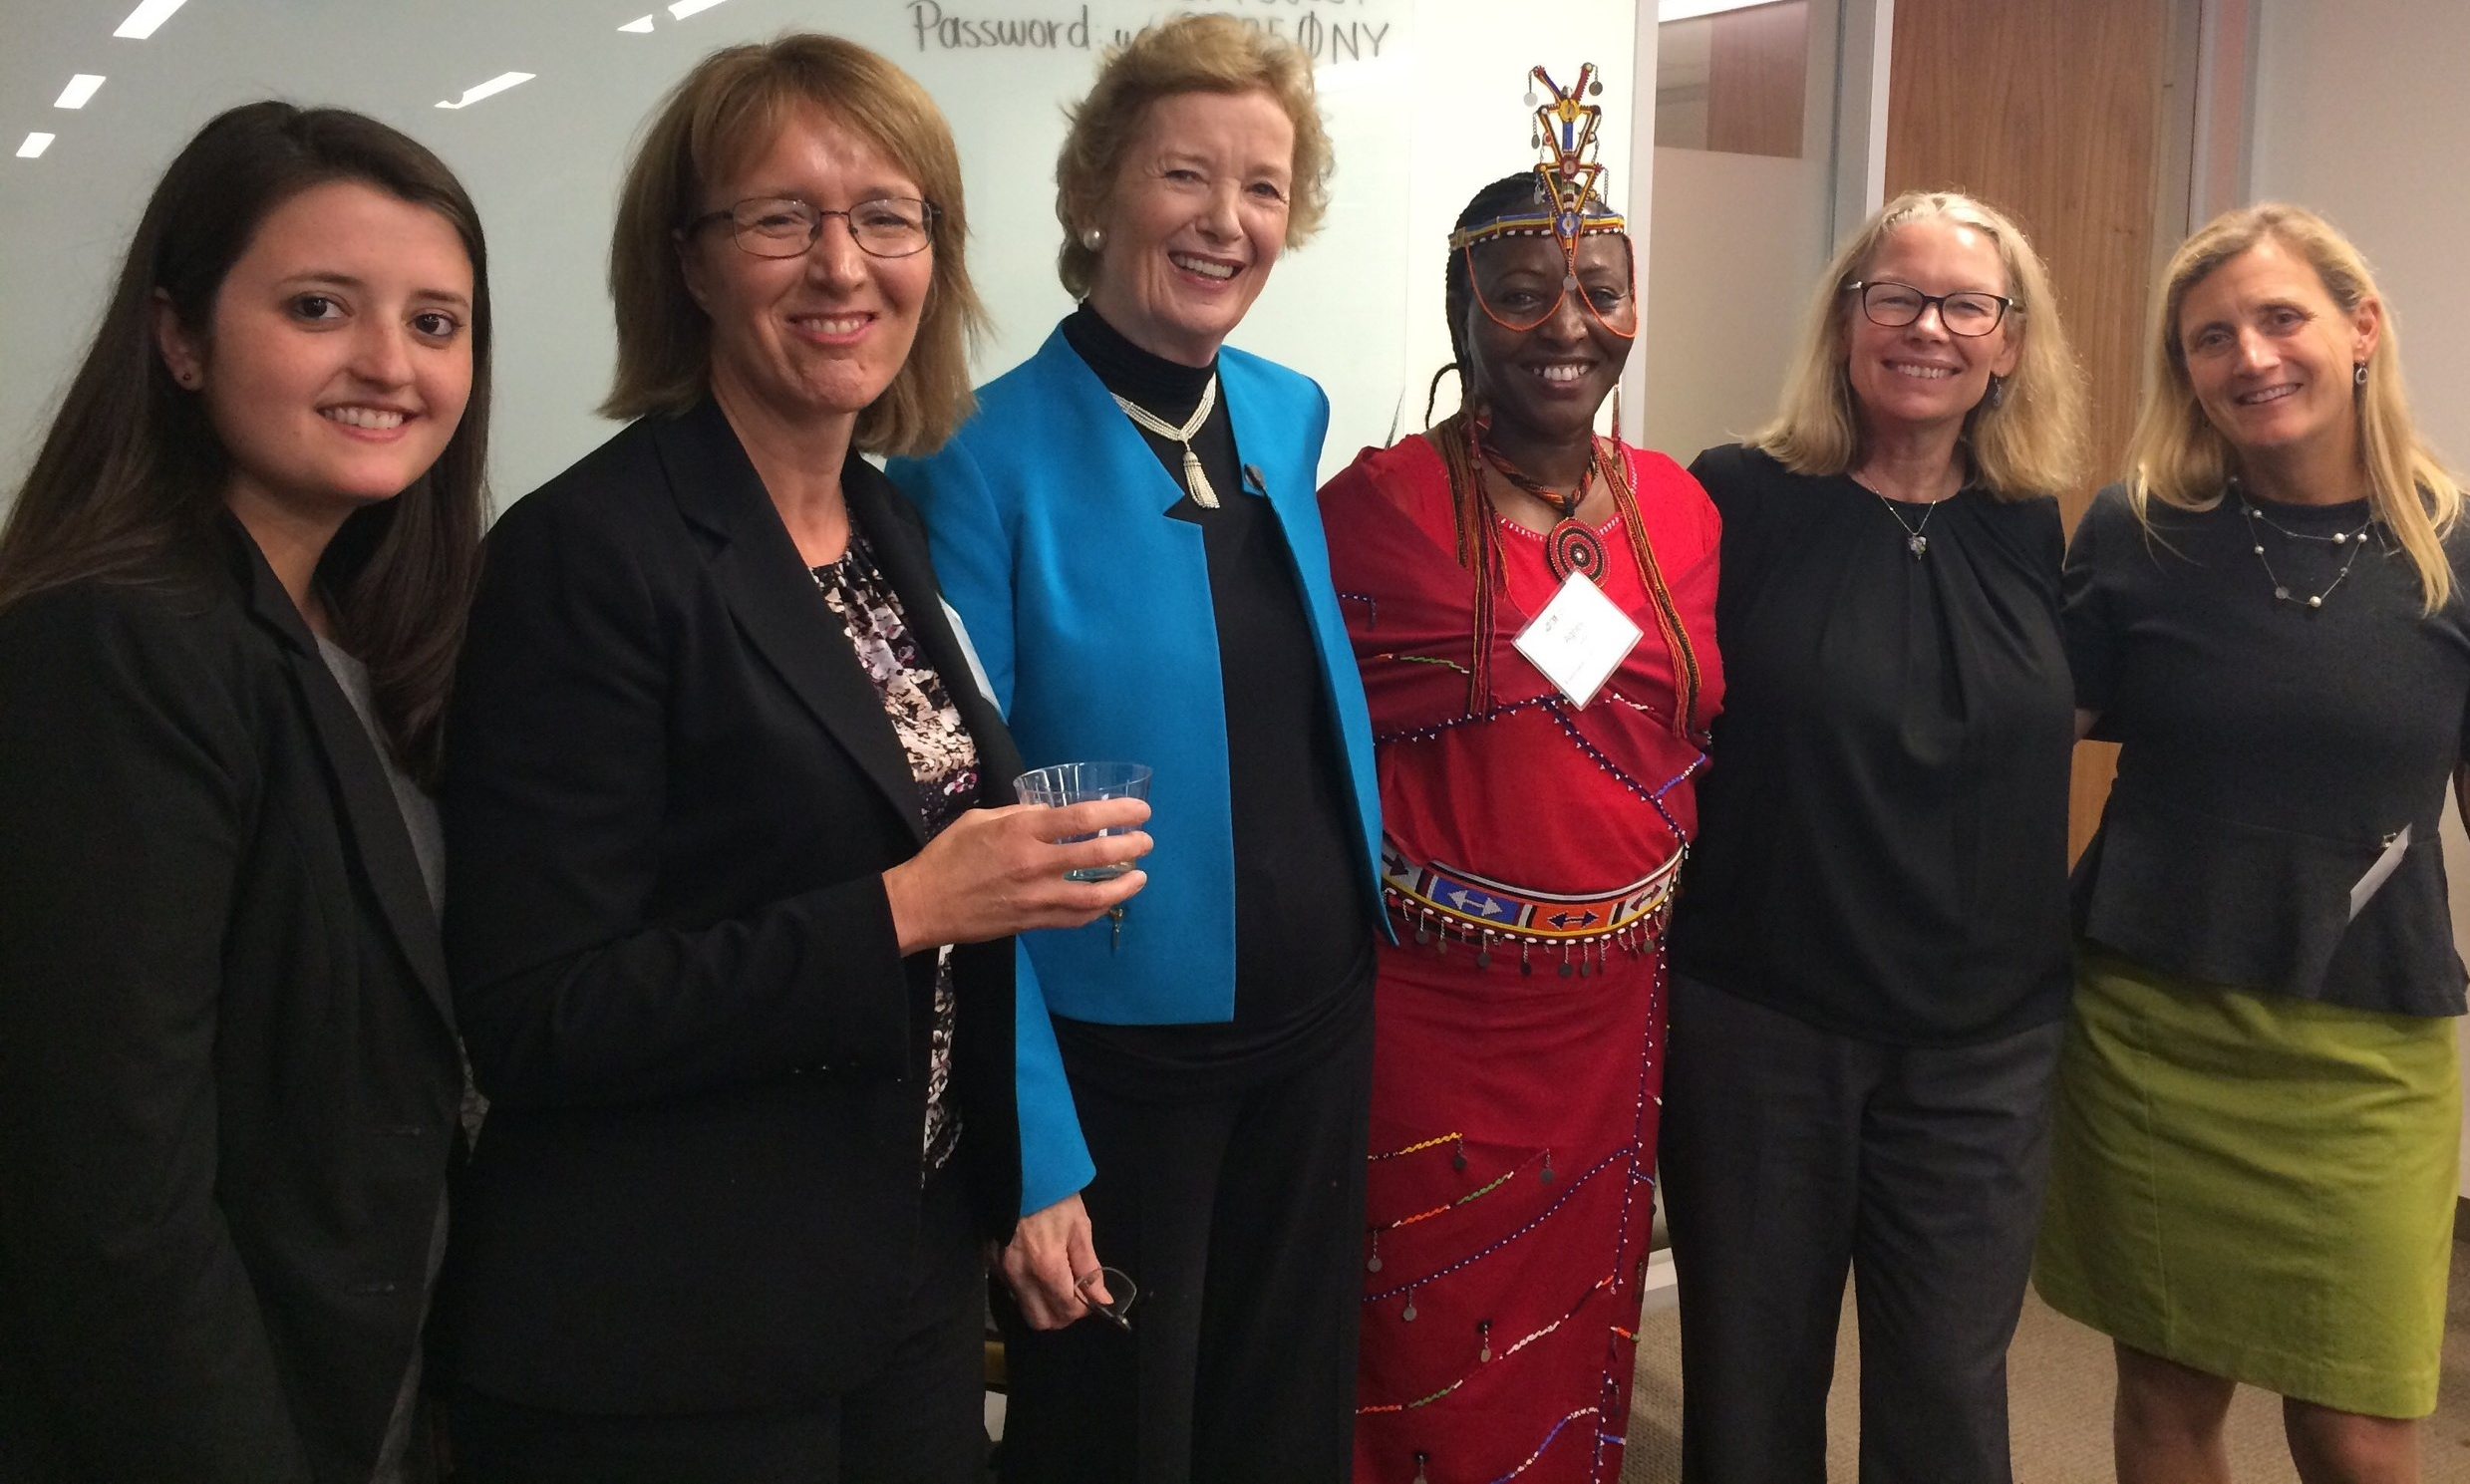 Pictured from left to right: Hilary Heath, Heather McGray, Mary Robinson, Agnes Leina, Heather Grady, and Anne Henshaw